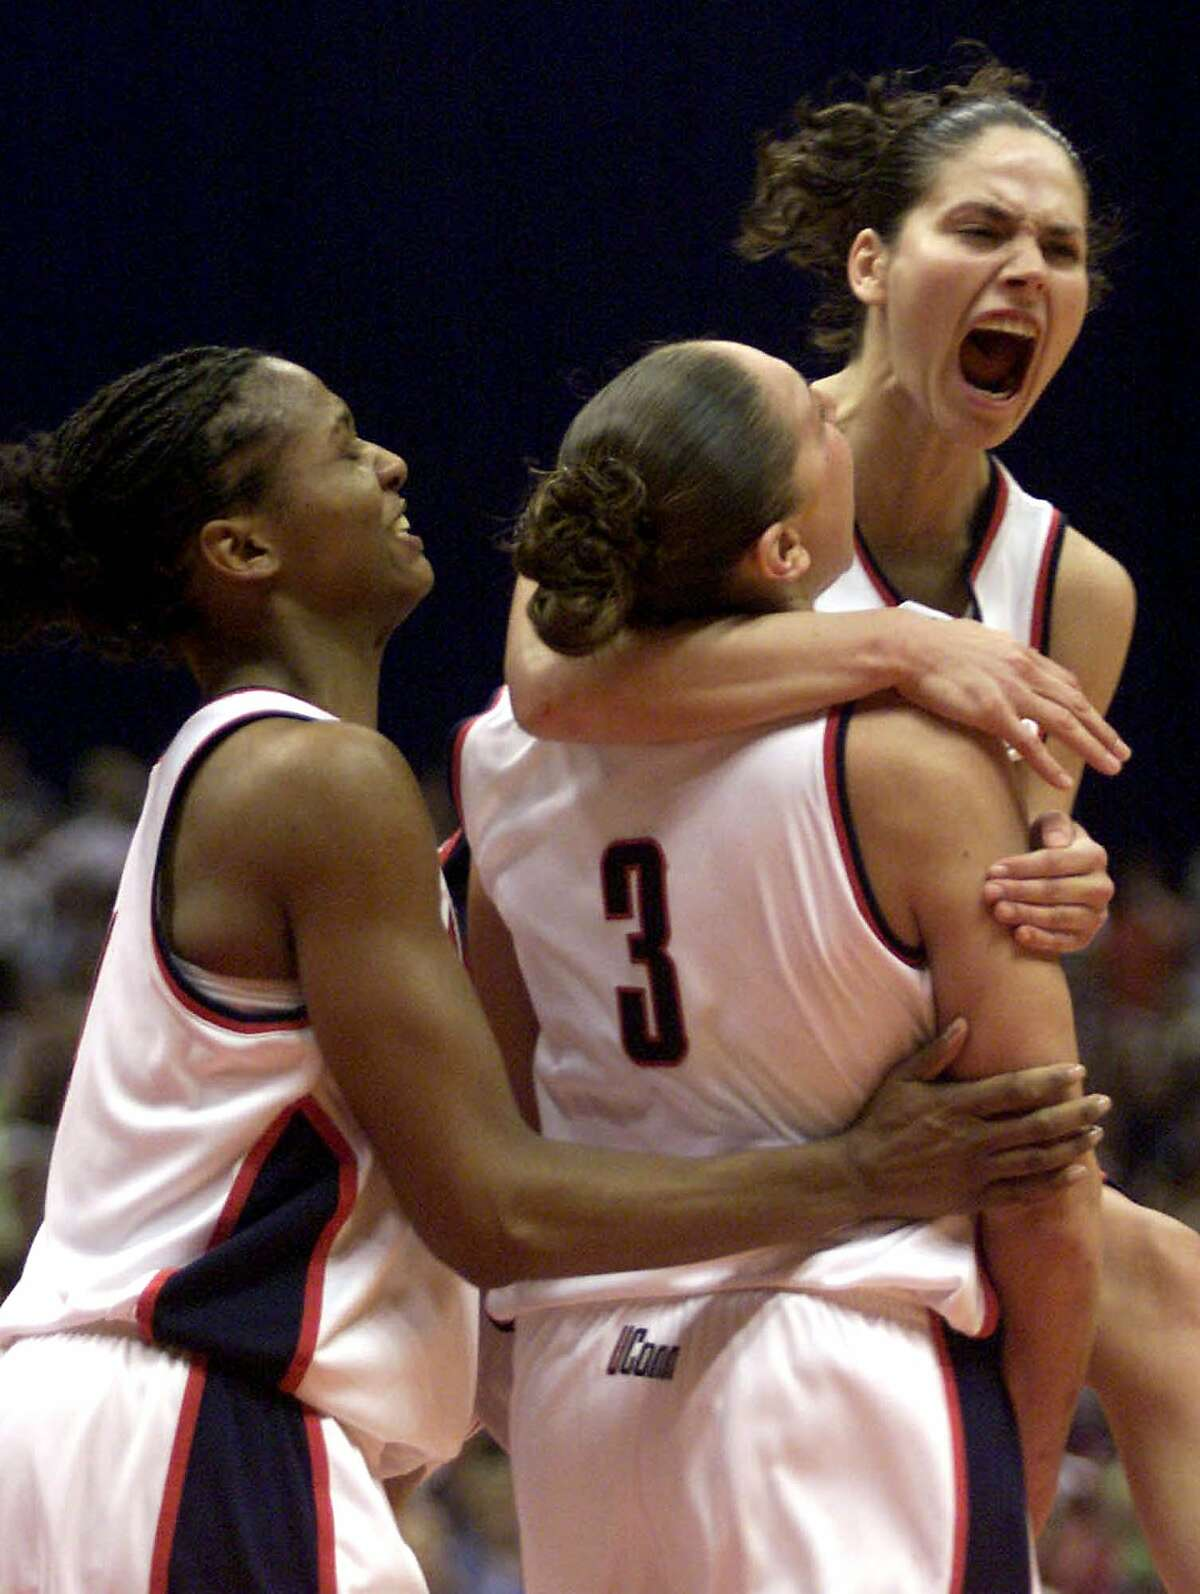 Pictured: Connecticuts's Tamika WIlliams, left, Diana Taurasi (3) and Sue Bird celebrate late in the second half against Oklahoma in UConn's 82-70 win in the NCAA Women's Final Four championship Sunday, March, 31, 2002, in San Antonio. (AP Photo/Donna McWilliam)